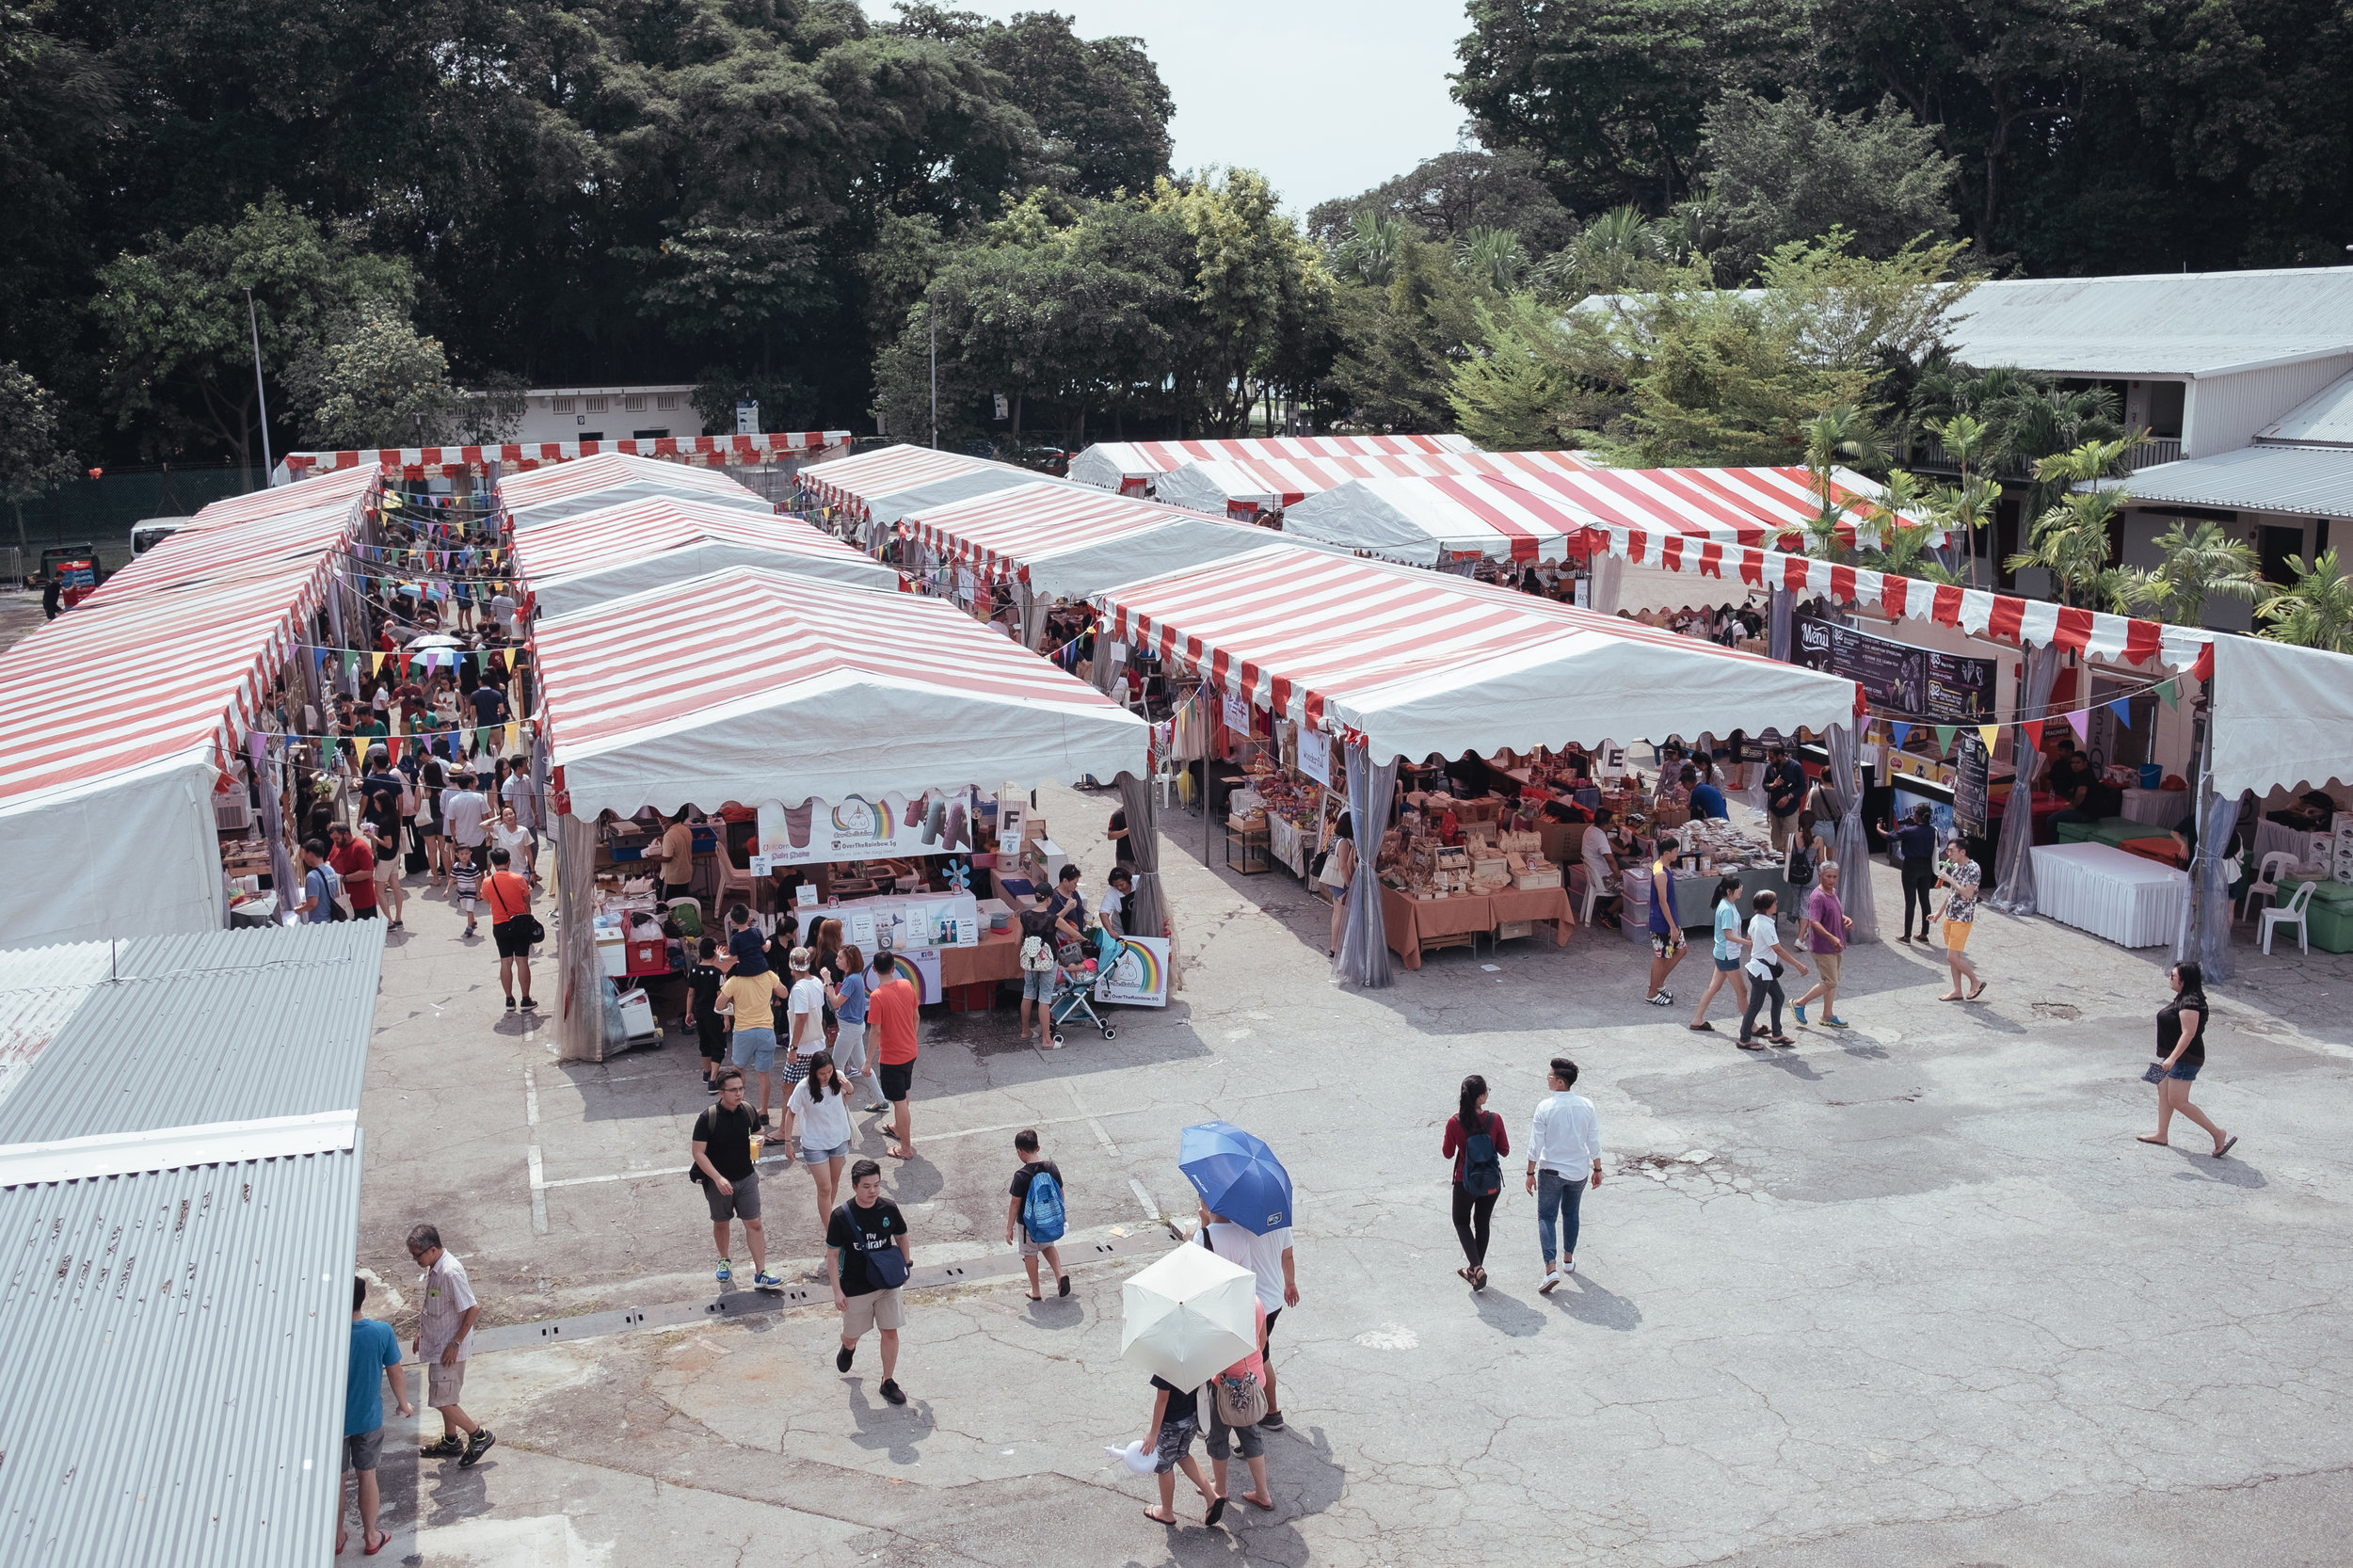 Overview of the stalls